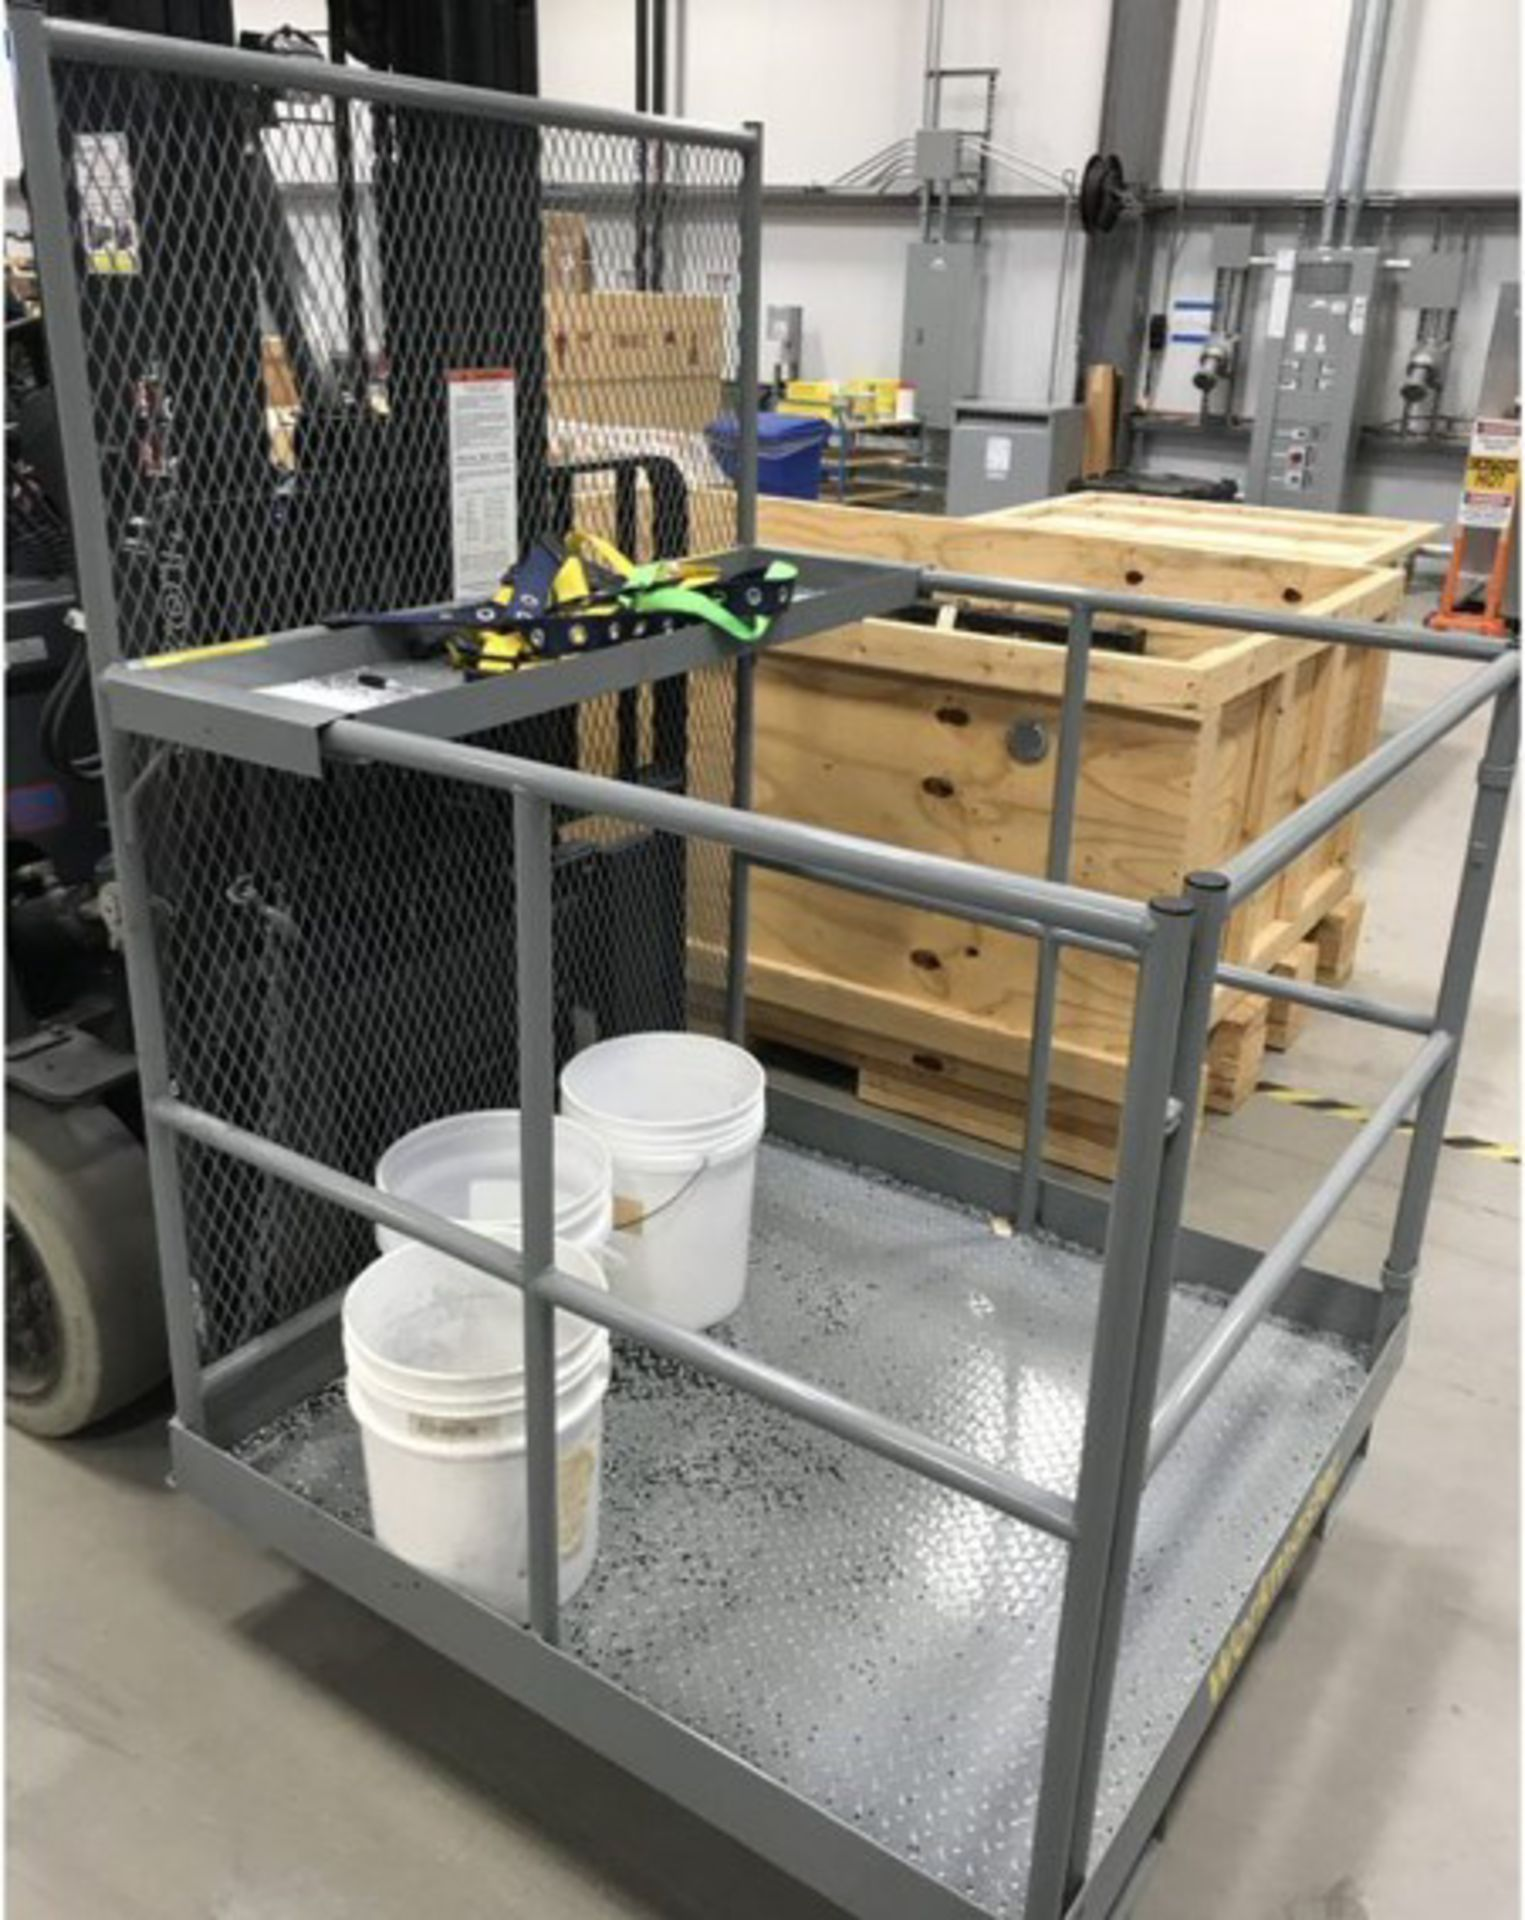 WORKMASTER WM104 1000 LB. CAPACITY OVERHEAD WORK PLATFORM [RIGGING FEES FOR LOT# 25 - $25 USD PLUS